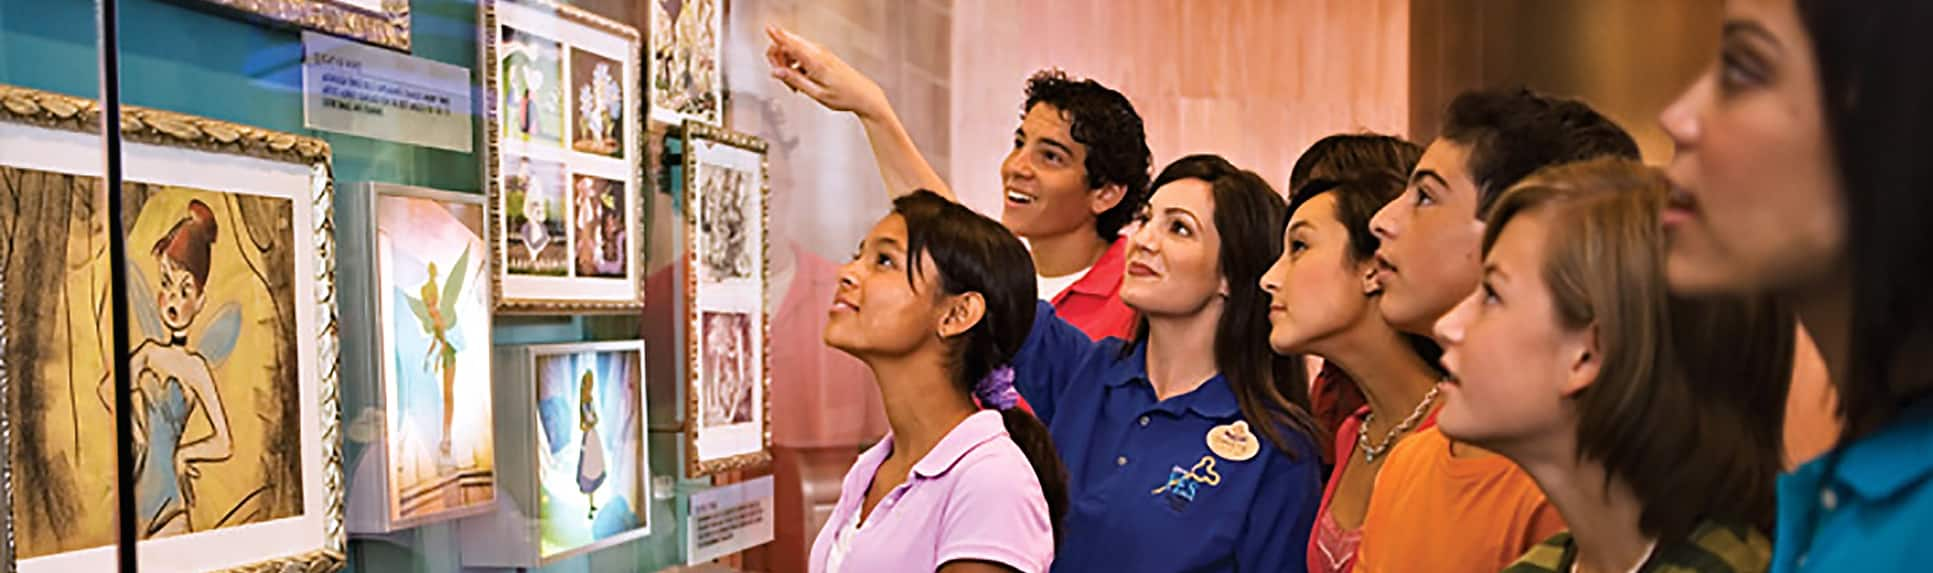 A Cast Member showing young adults Disney portraits encased in a glass display